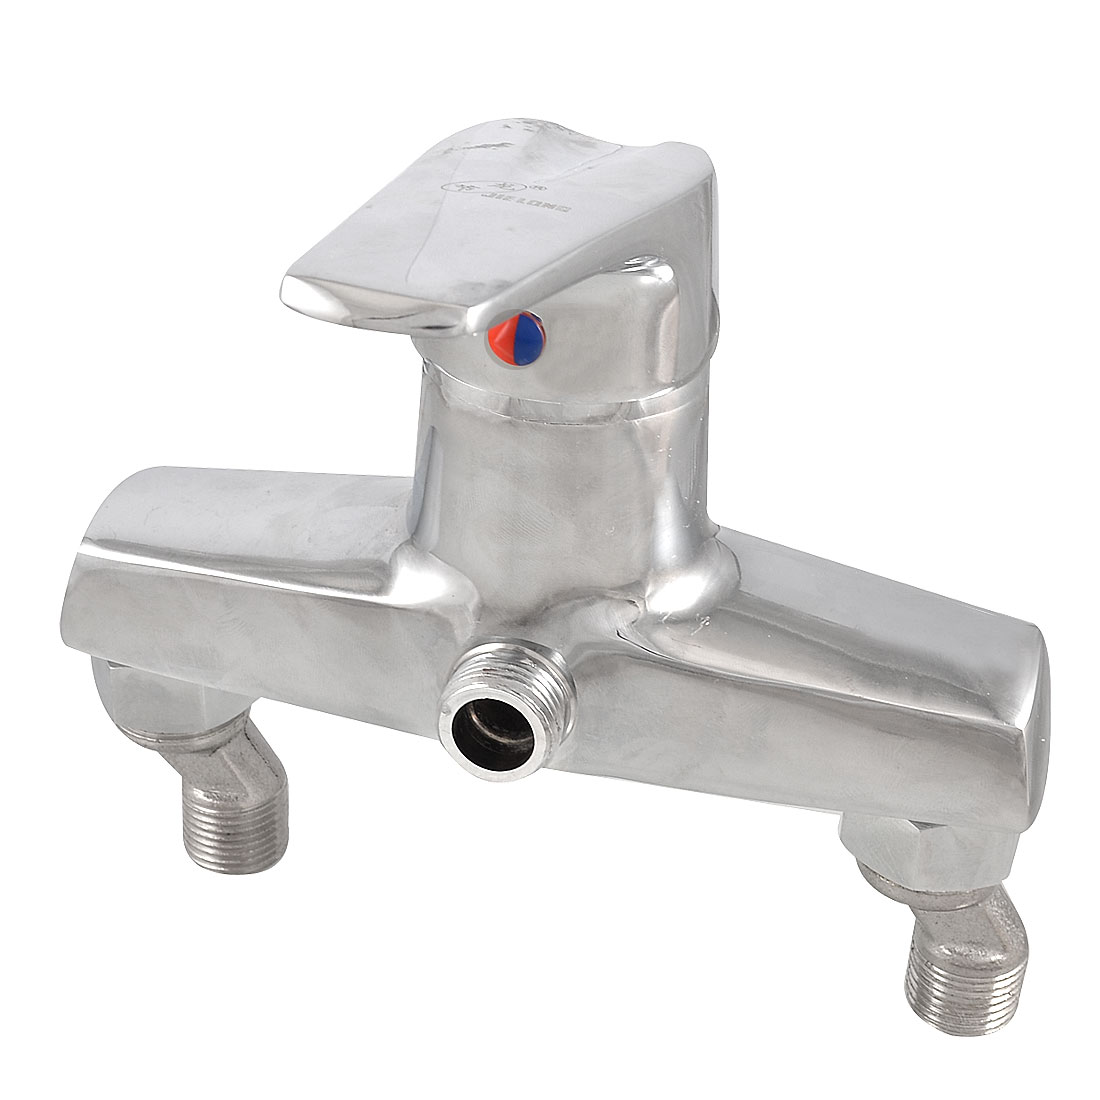 20mm Water Outlet Male Dia Kitchen Cold Hot Water Faucet Mixer Tap